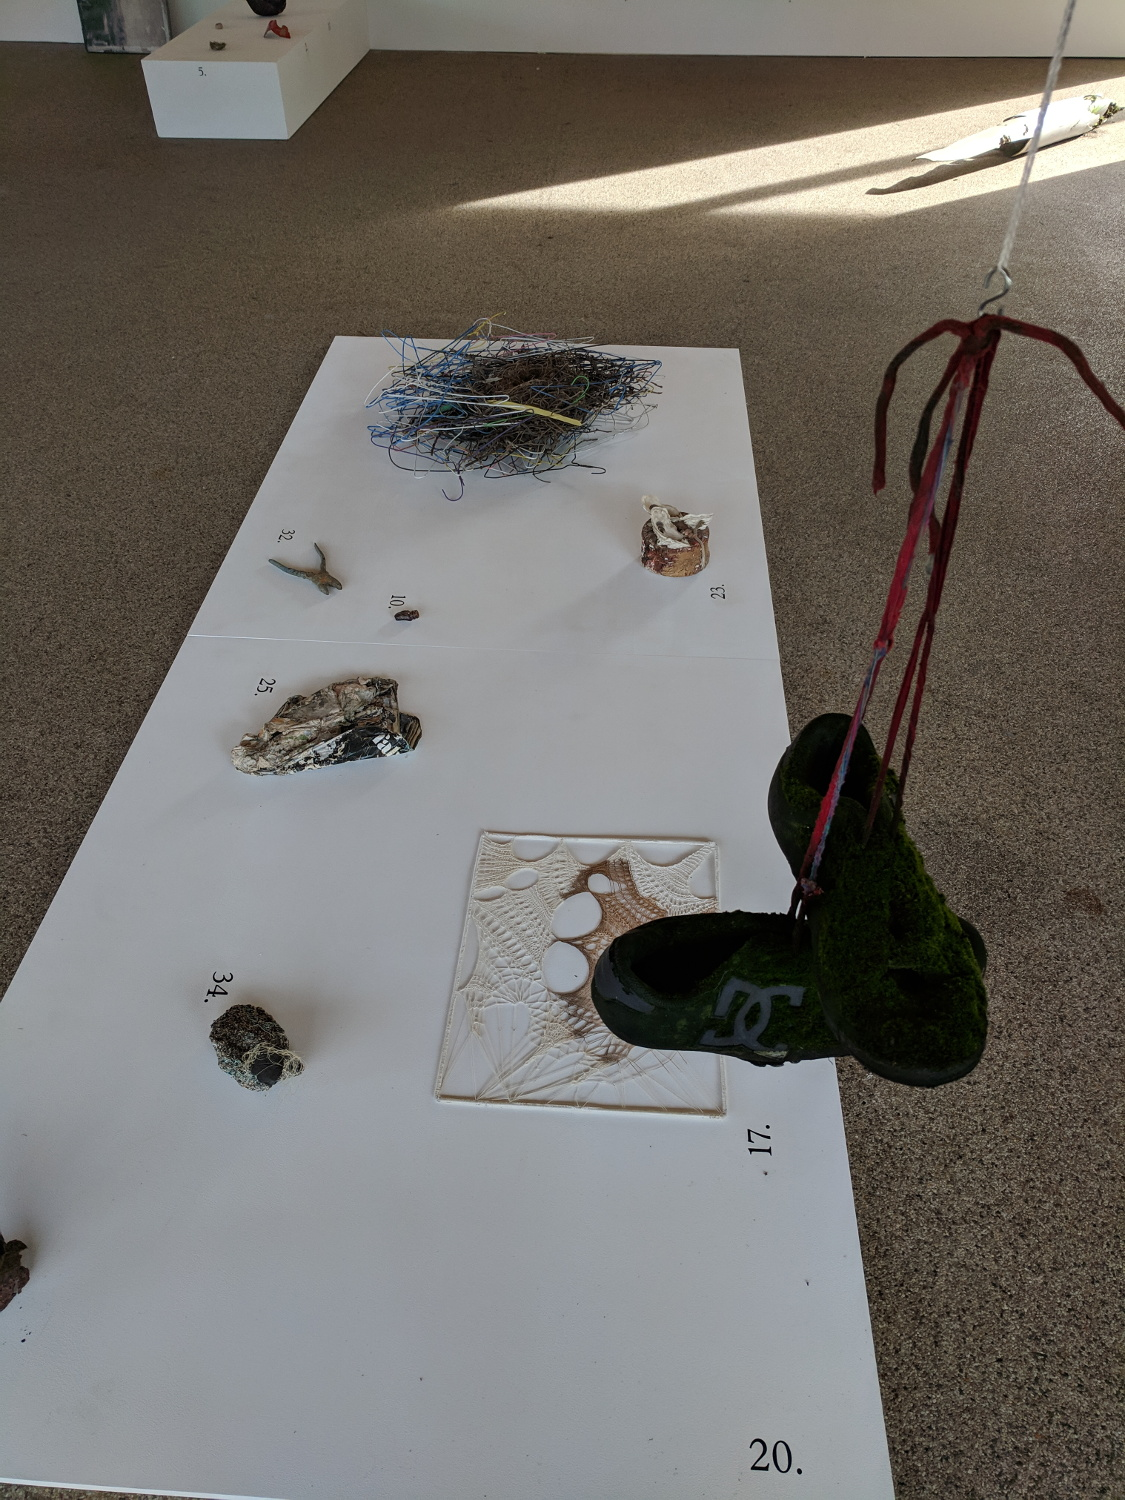 A table containing natured items